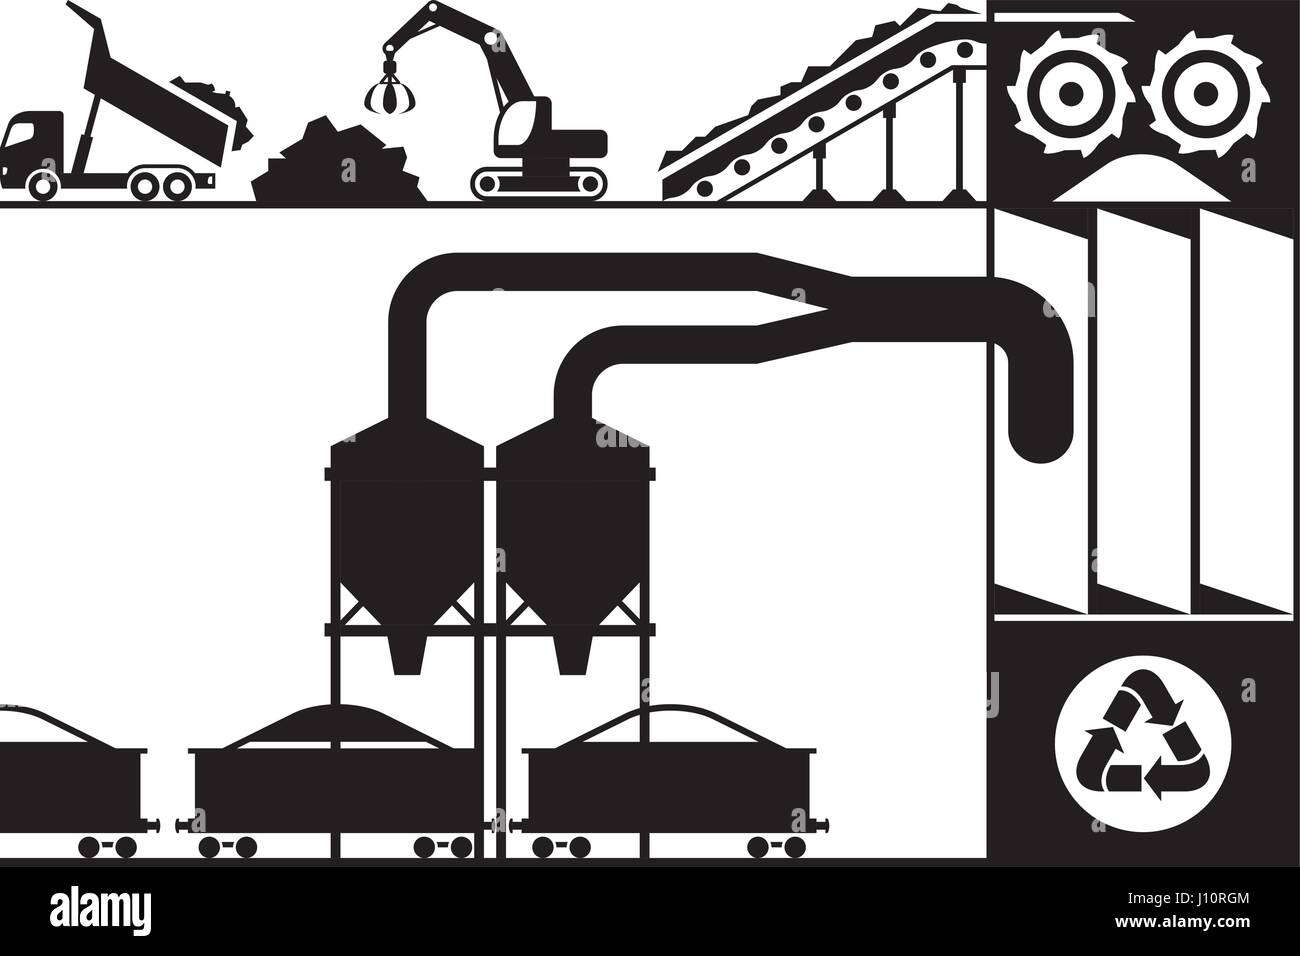 Recycling and processing of scrap metal - vector illustration - Stock Vector